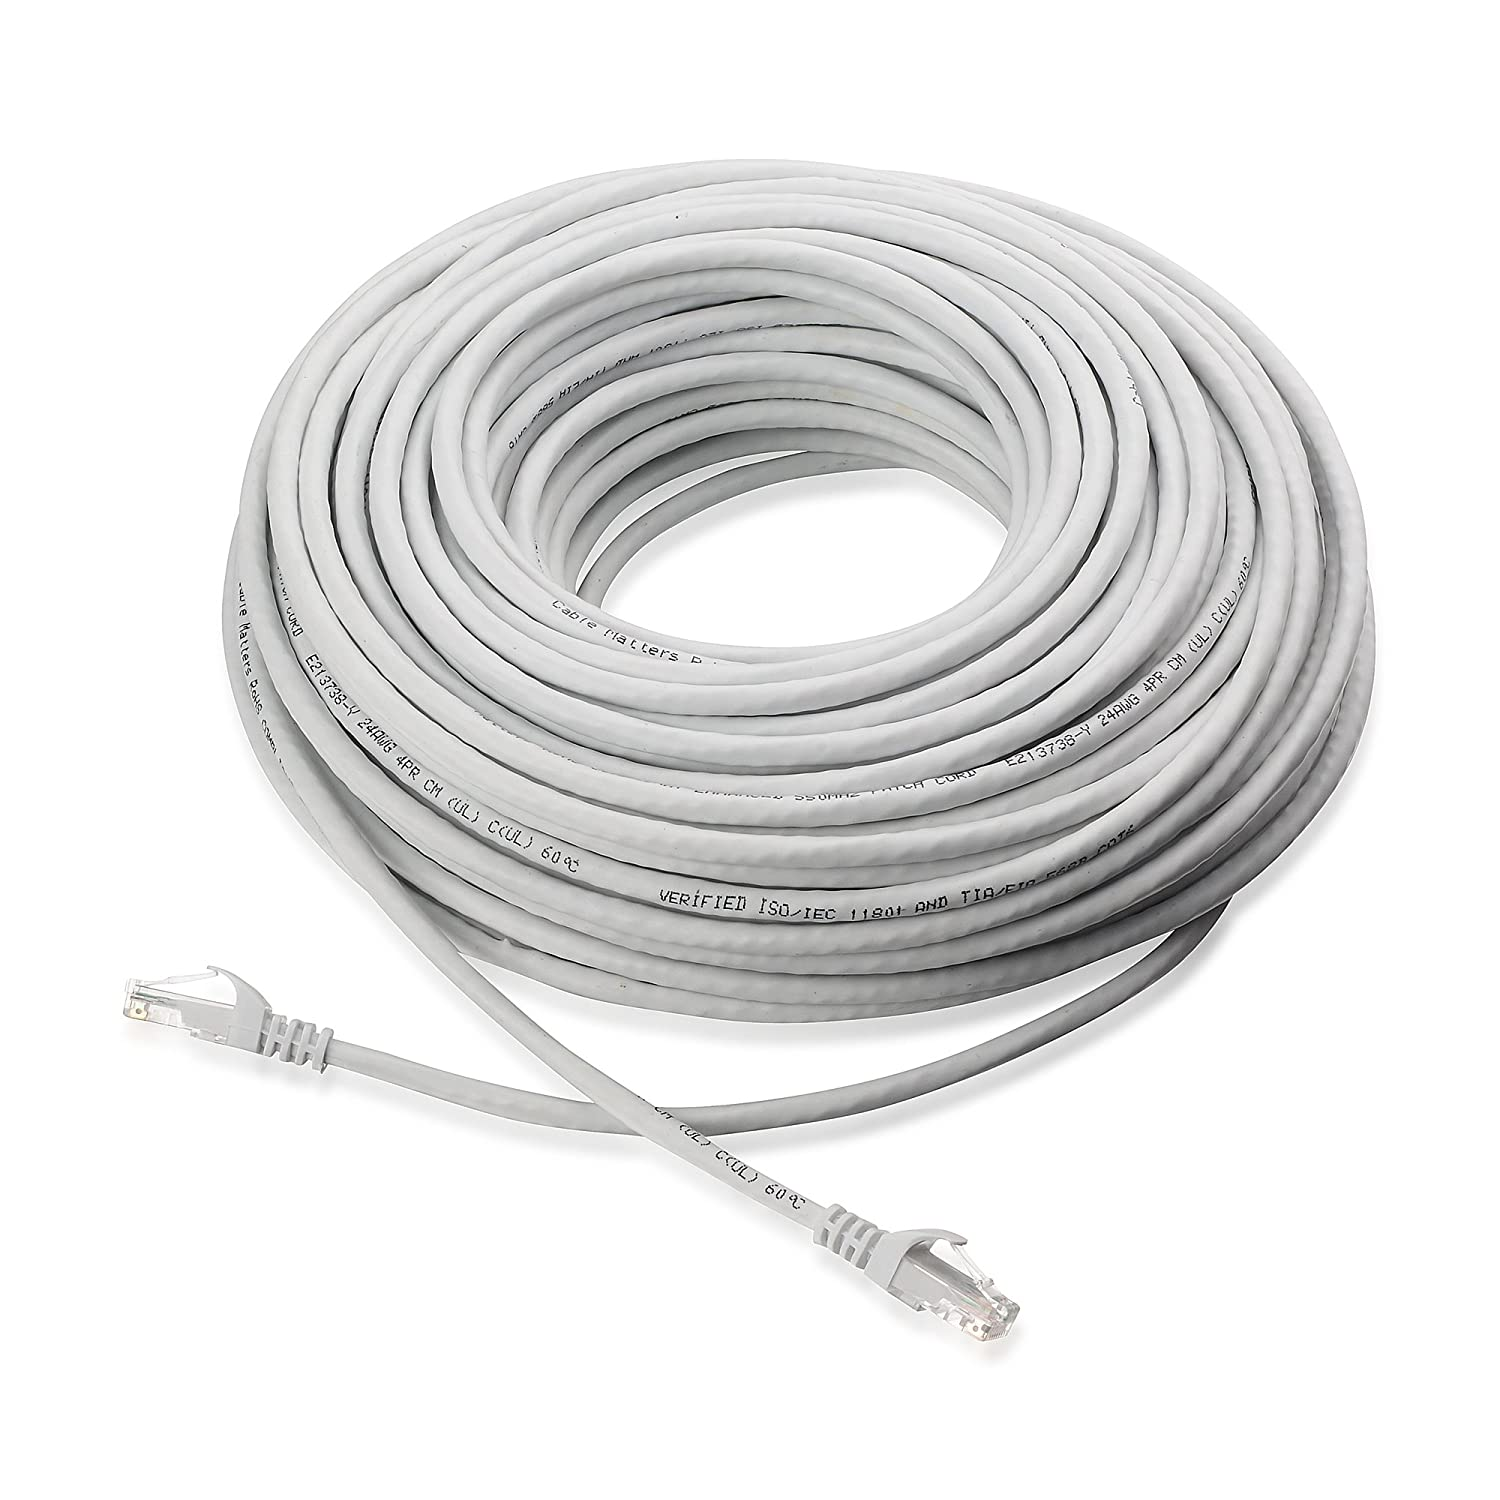 Amazon.com: Cable Matters Snagless Cat6 Ethernet Cable (Cat6 Cable ...